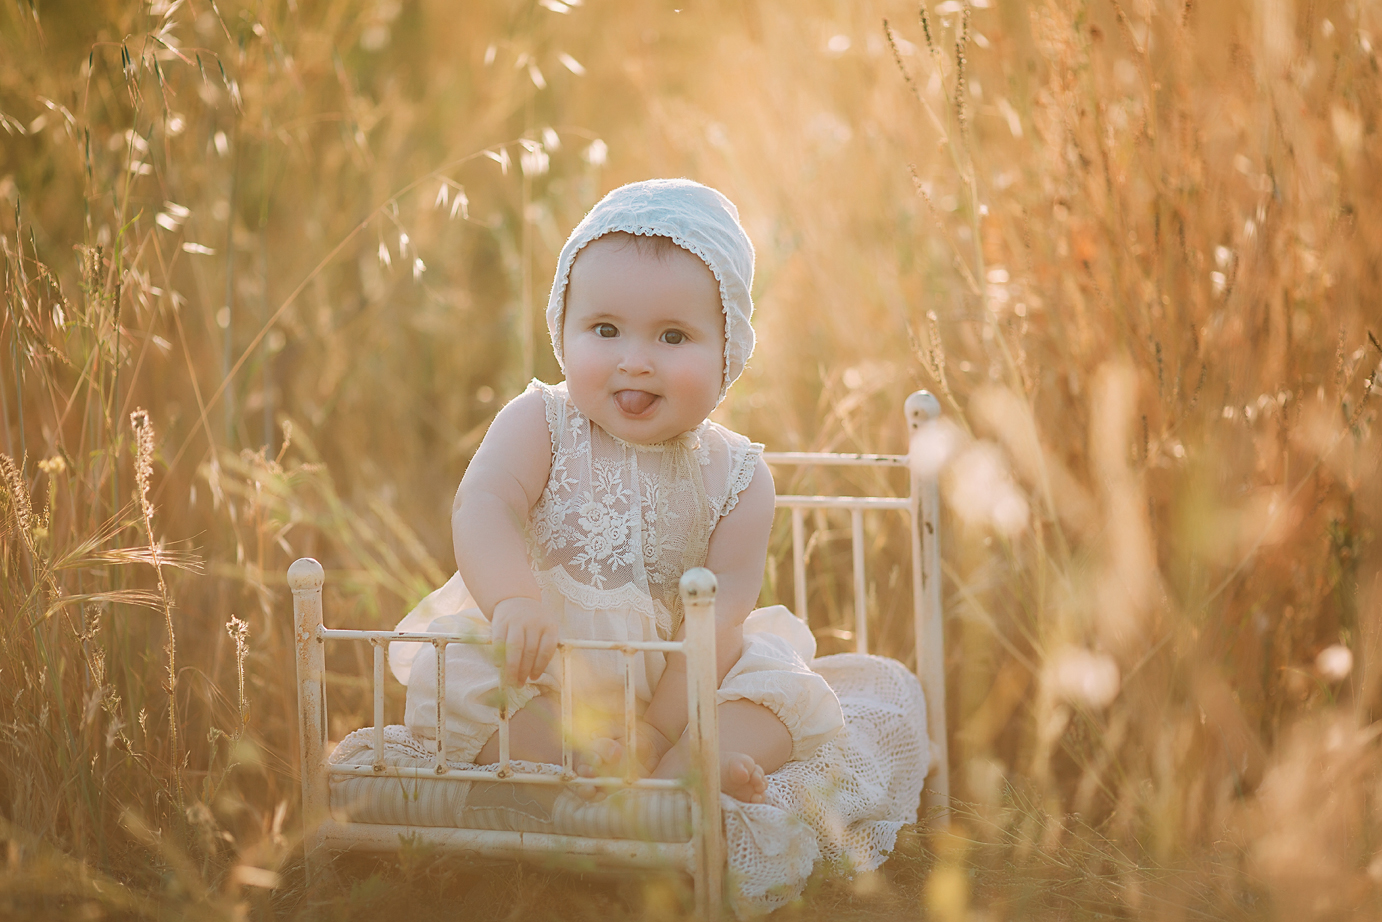 irvine-baby-photographer-orange-county-studio-outdoor-sunset-vintage.jpg